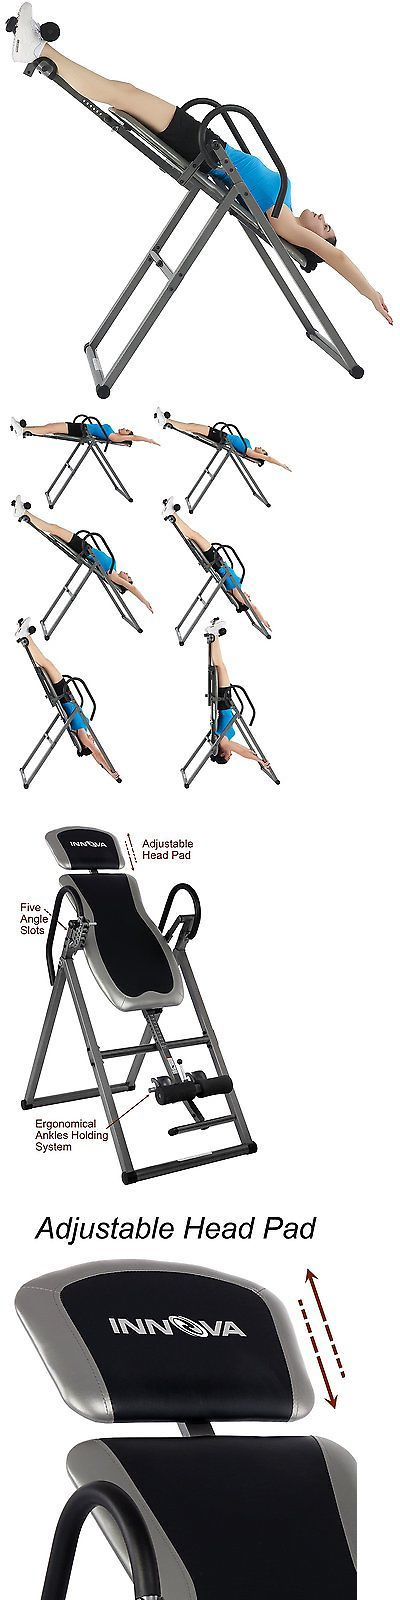 Inversion Tables 112954: Back Pain Inversion Therapy Table Chair Posture Muscle Stretch Exercise Machine -> BUY IT NOW ONLY: $123.45 on eBay!